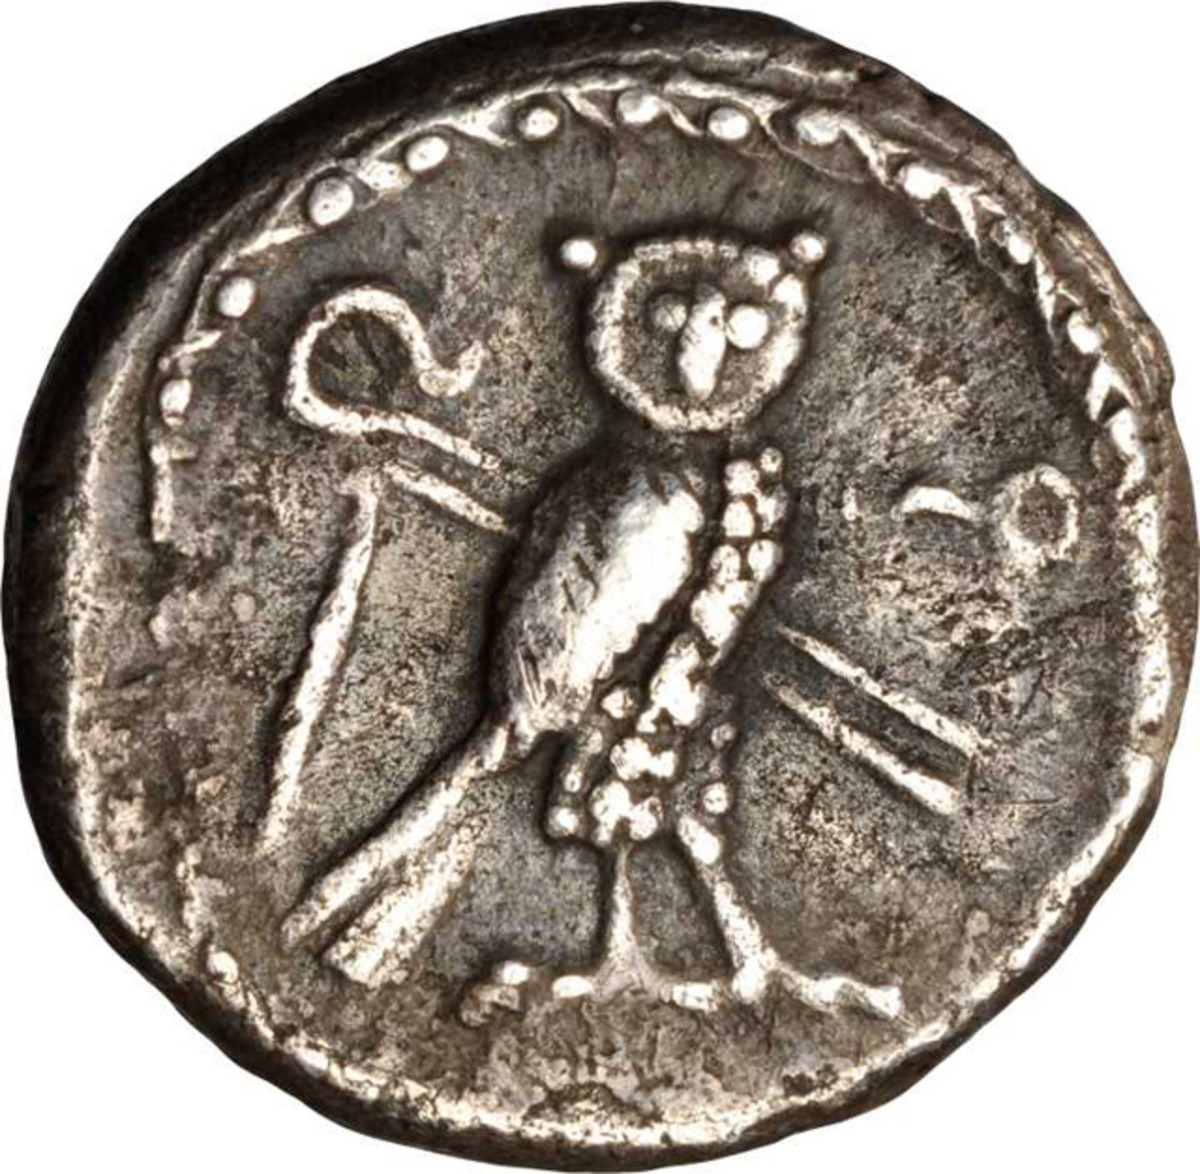 An owl appears on a 4th century B.C.E. silver shekel of Tyre. Image courtesy of Stack's.